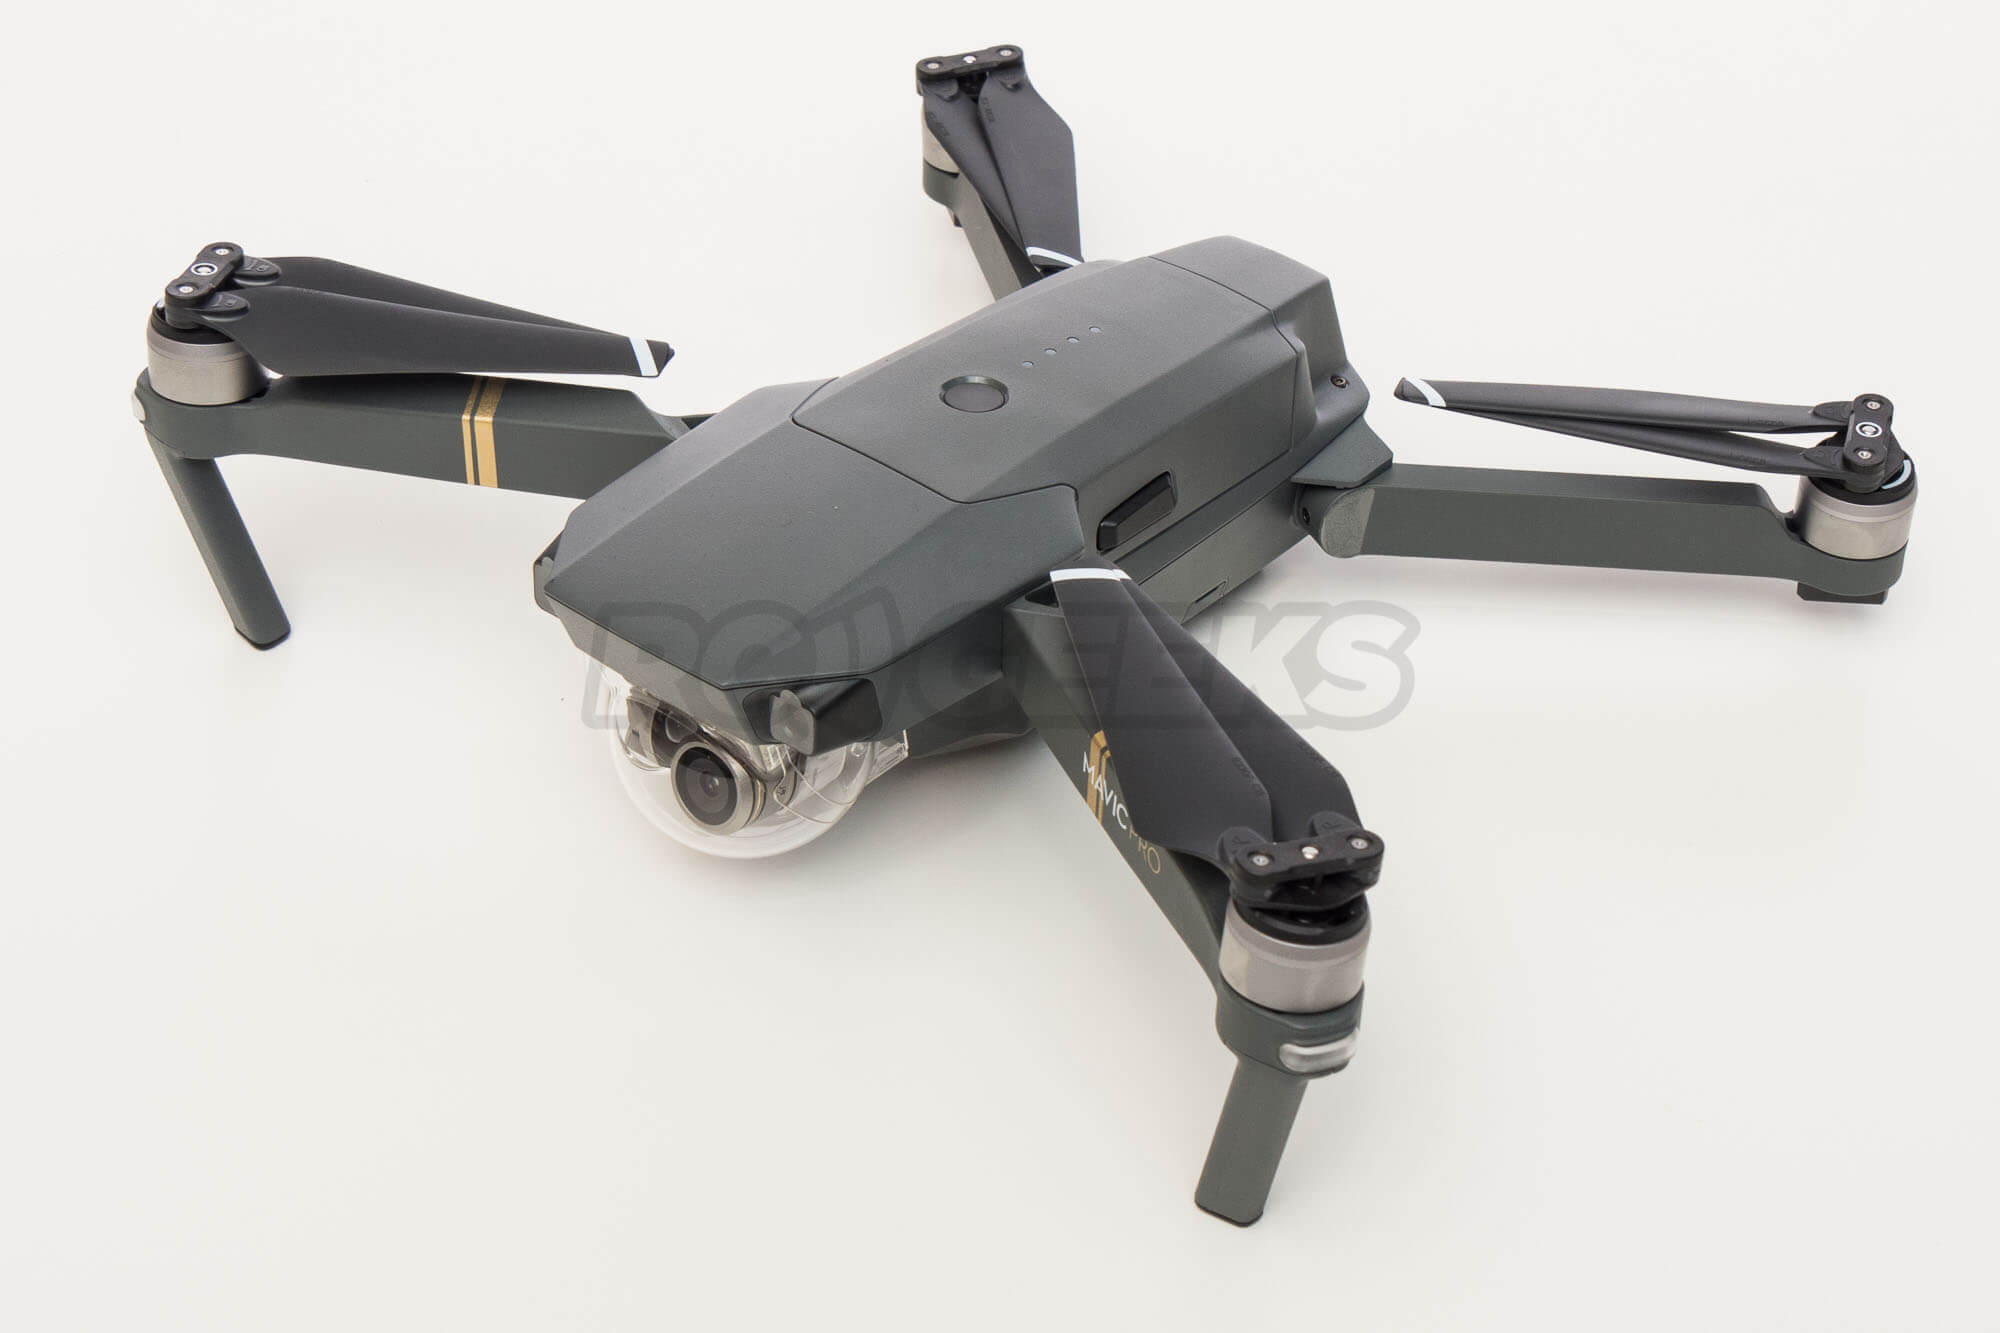 DJI-Mavic-pro-aircraft-folded-unfolded-arms